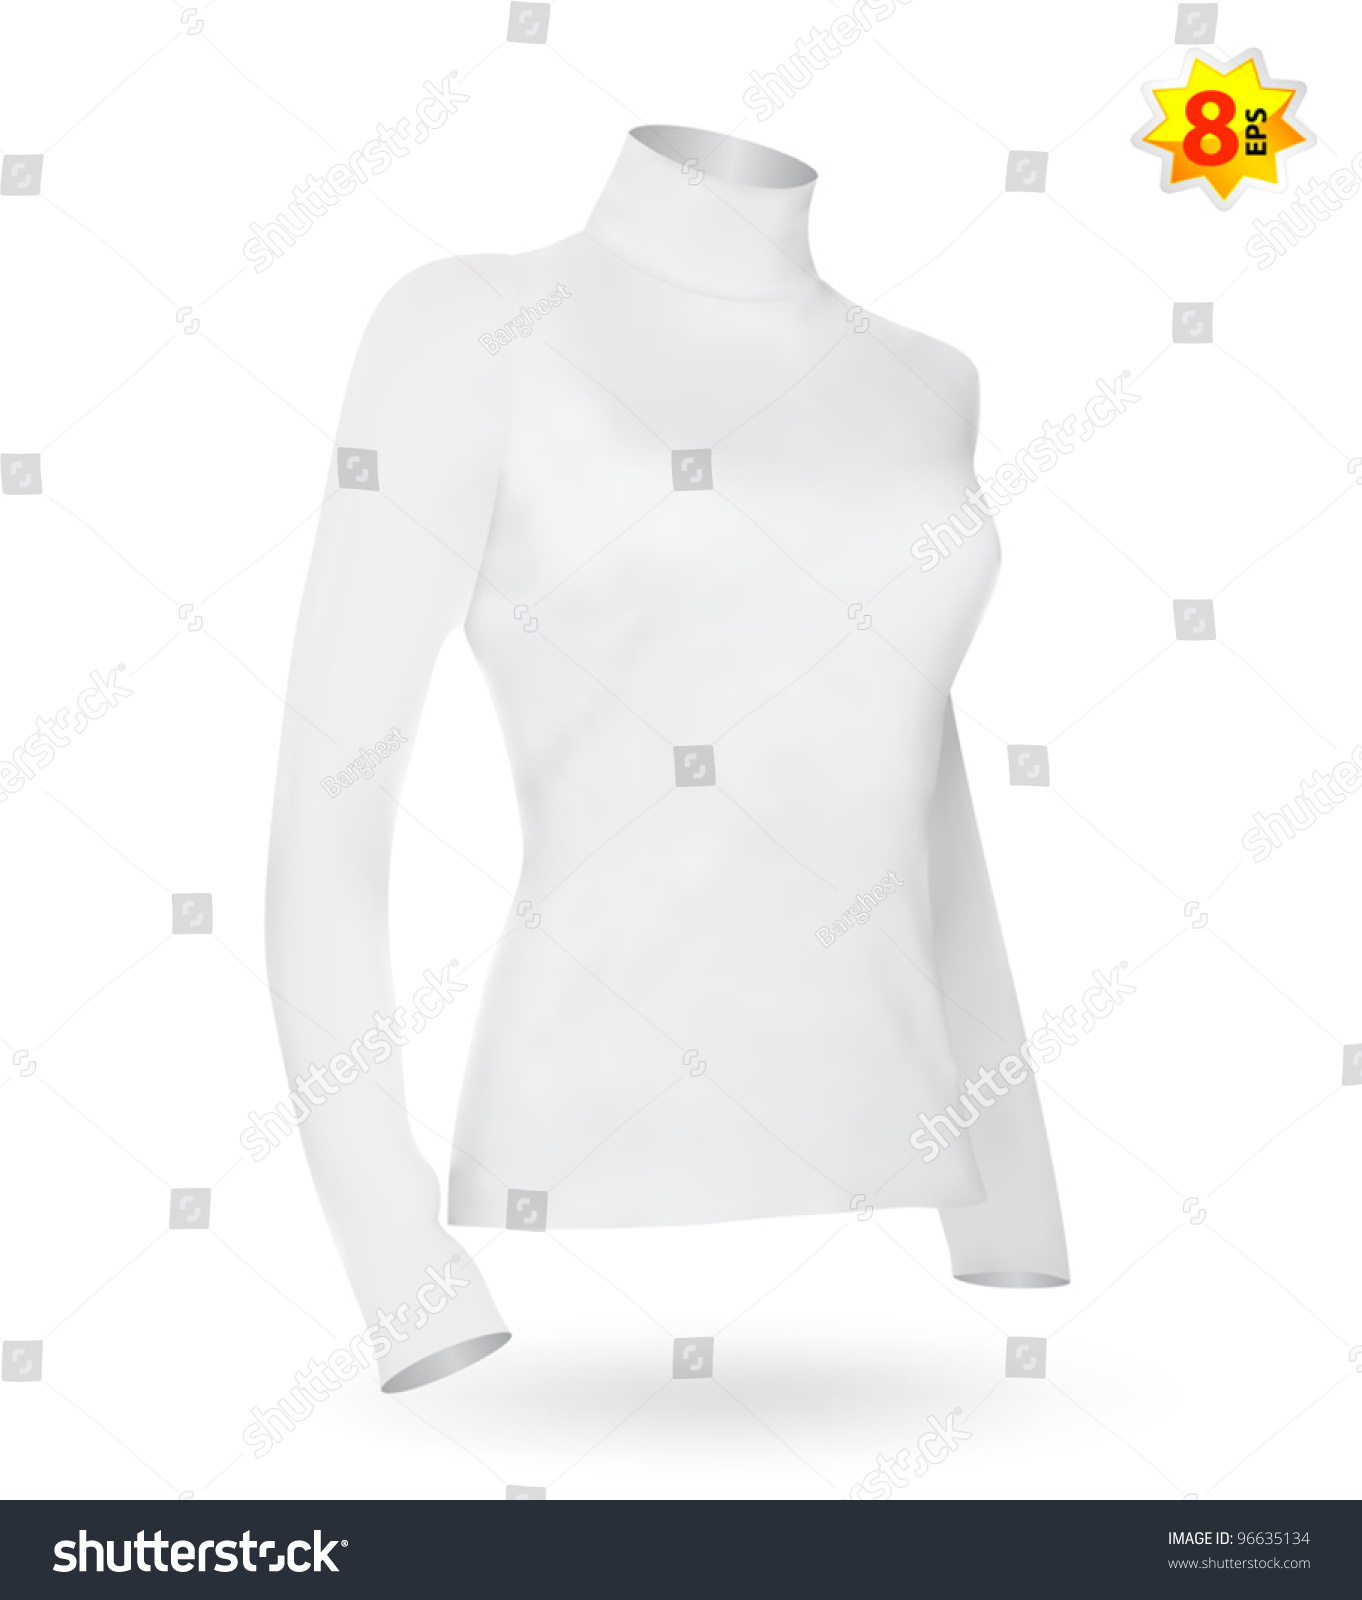 Female Long Sleeve Tshirt Template Photorealistic Stock Vector